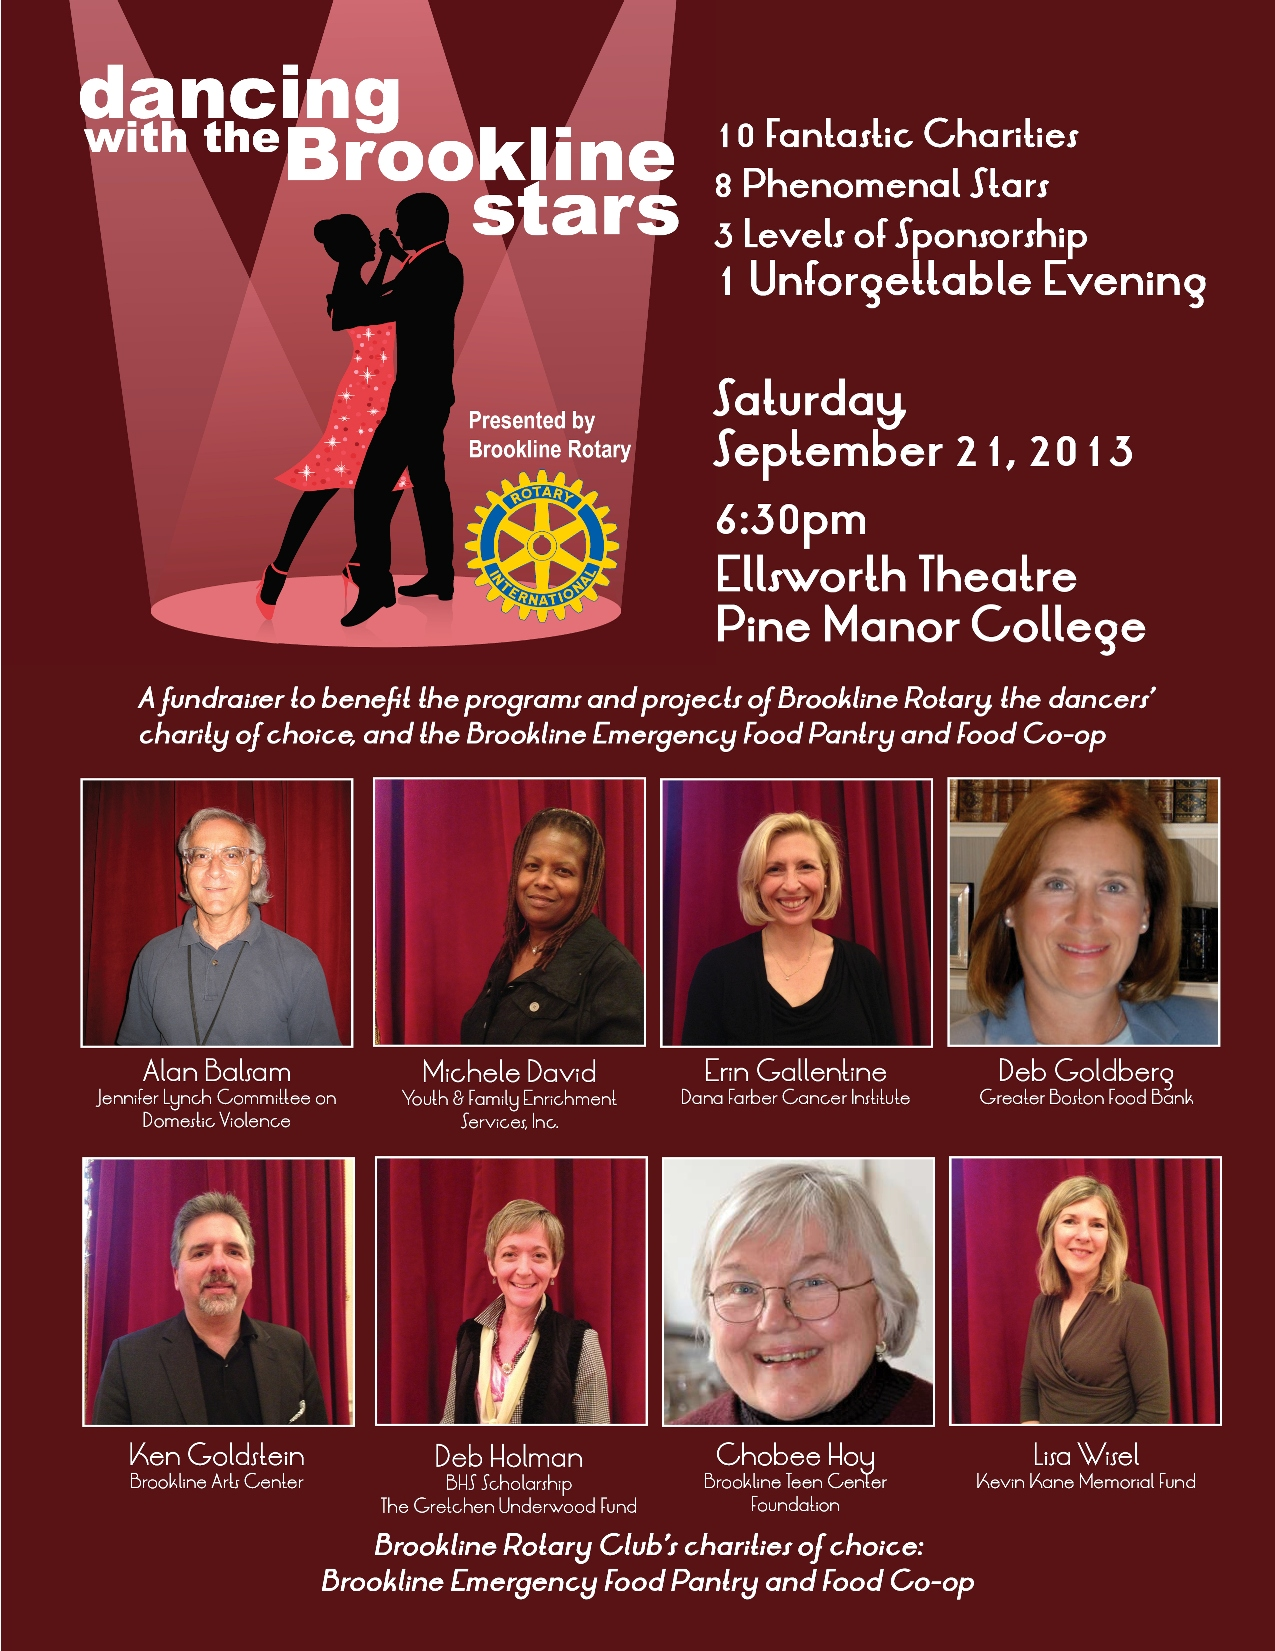 Dancing with the Brookline Stars